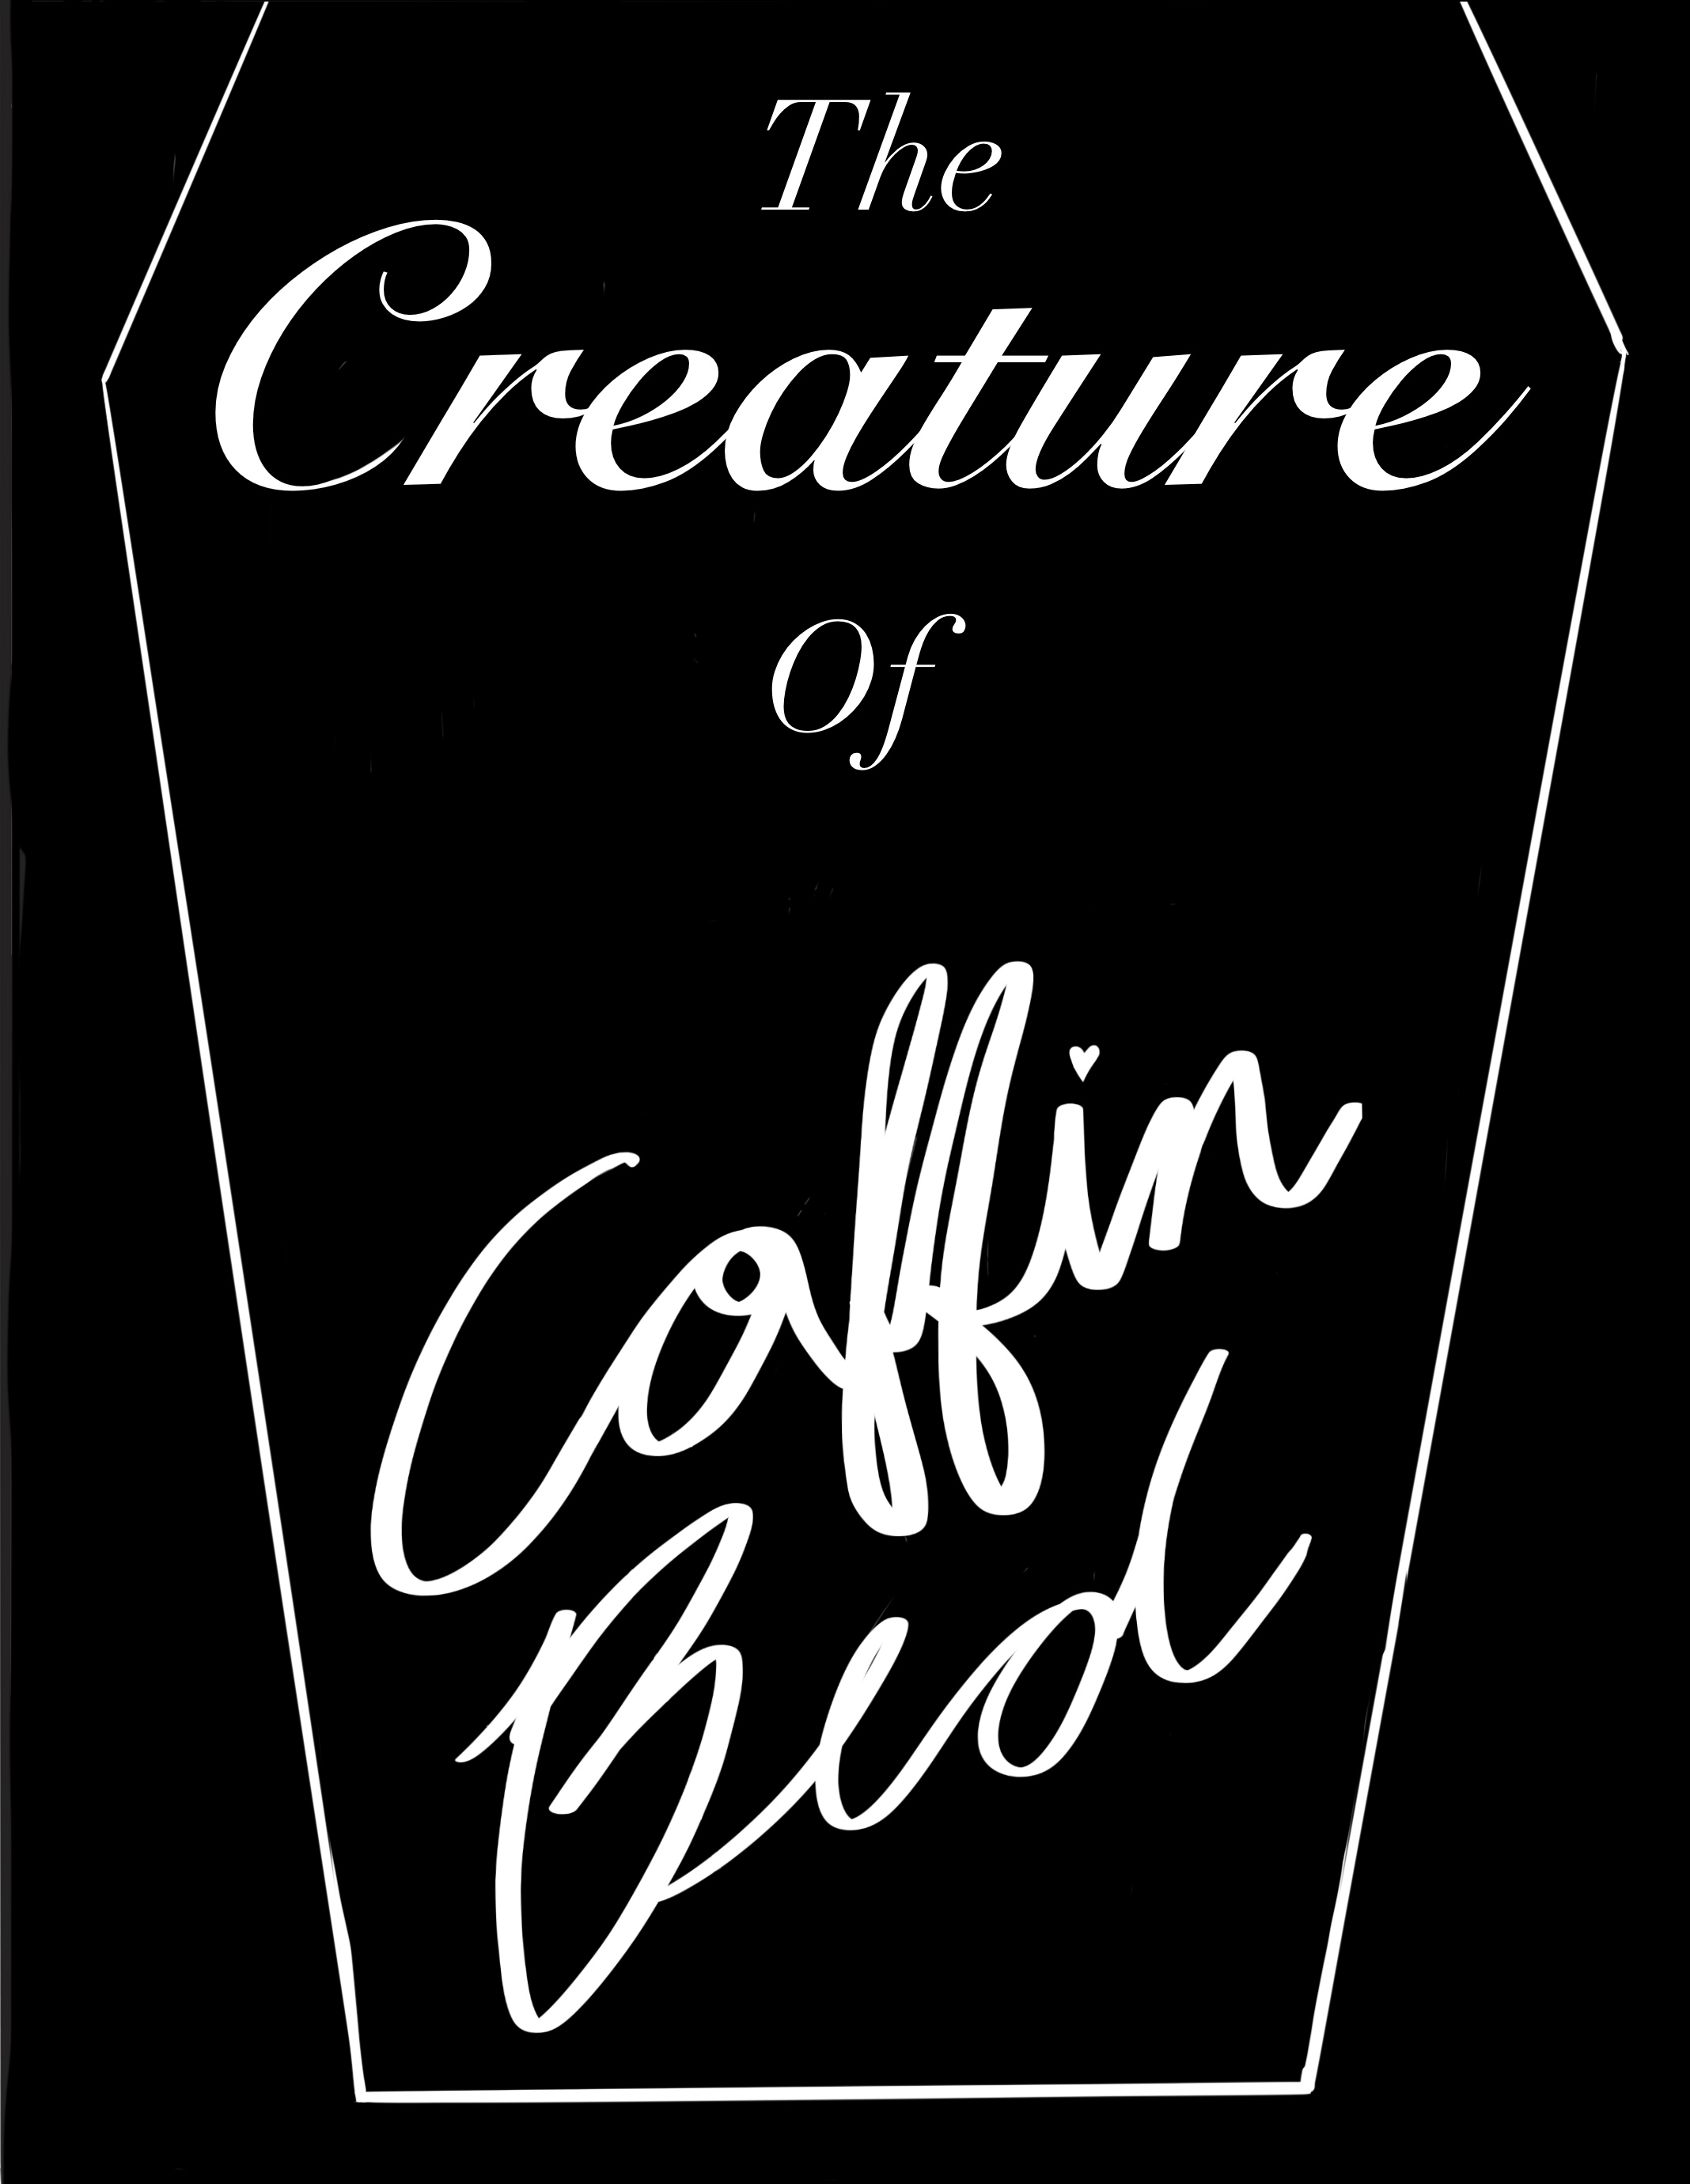 Creature of Coffin Bed Cover by Kahbbie